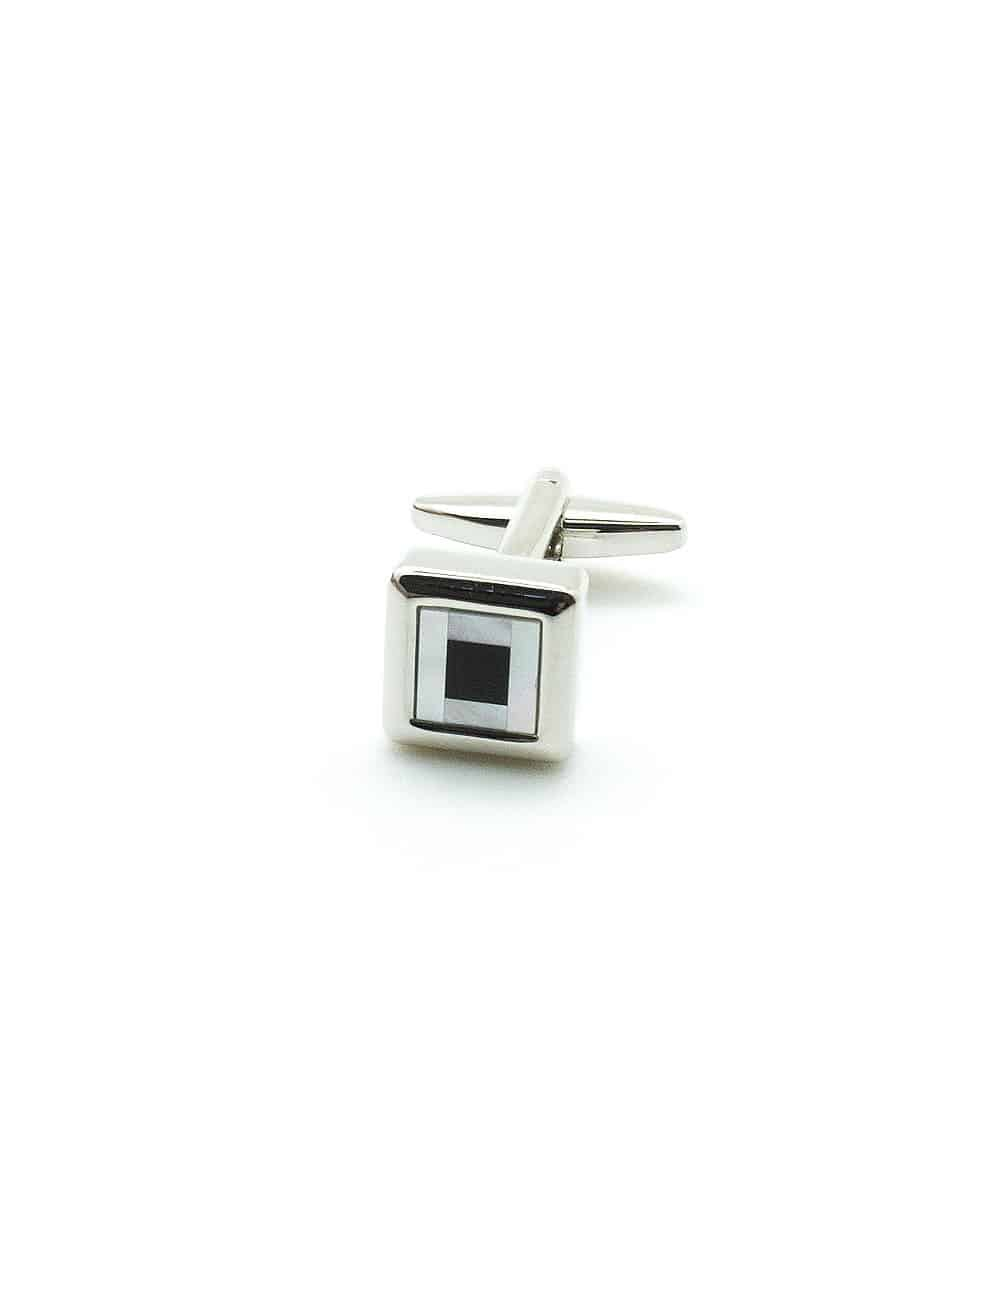 White Pearl with Black Enamel in Silver Square Cufflink C131FP-068